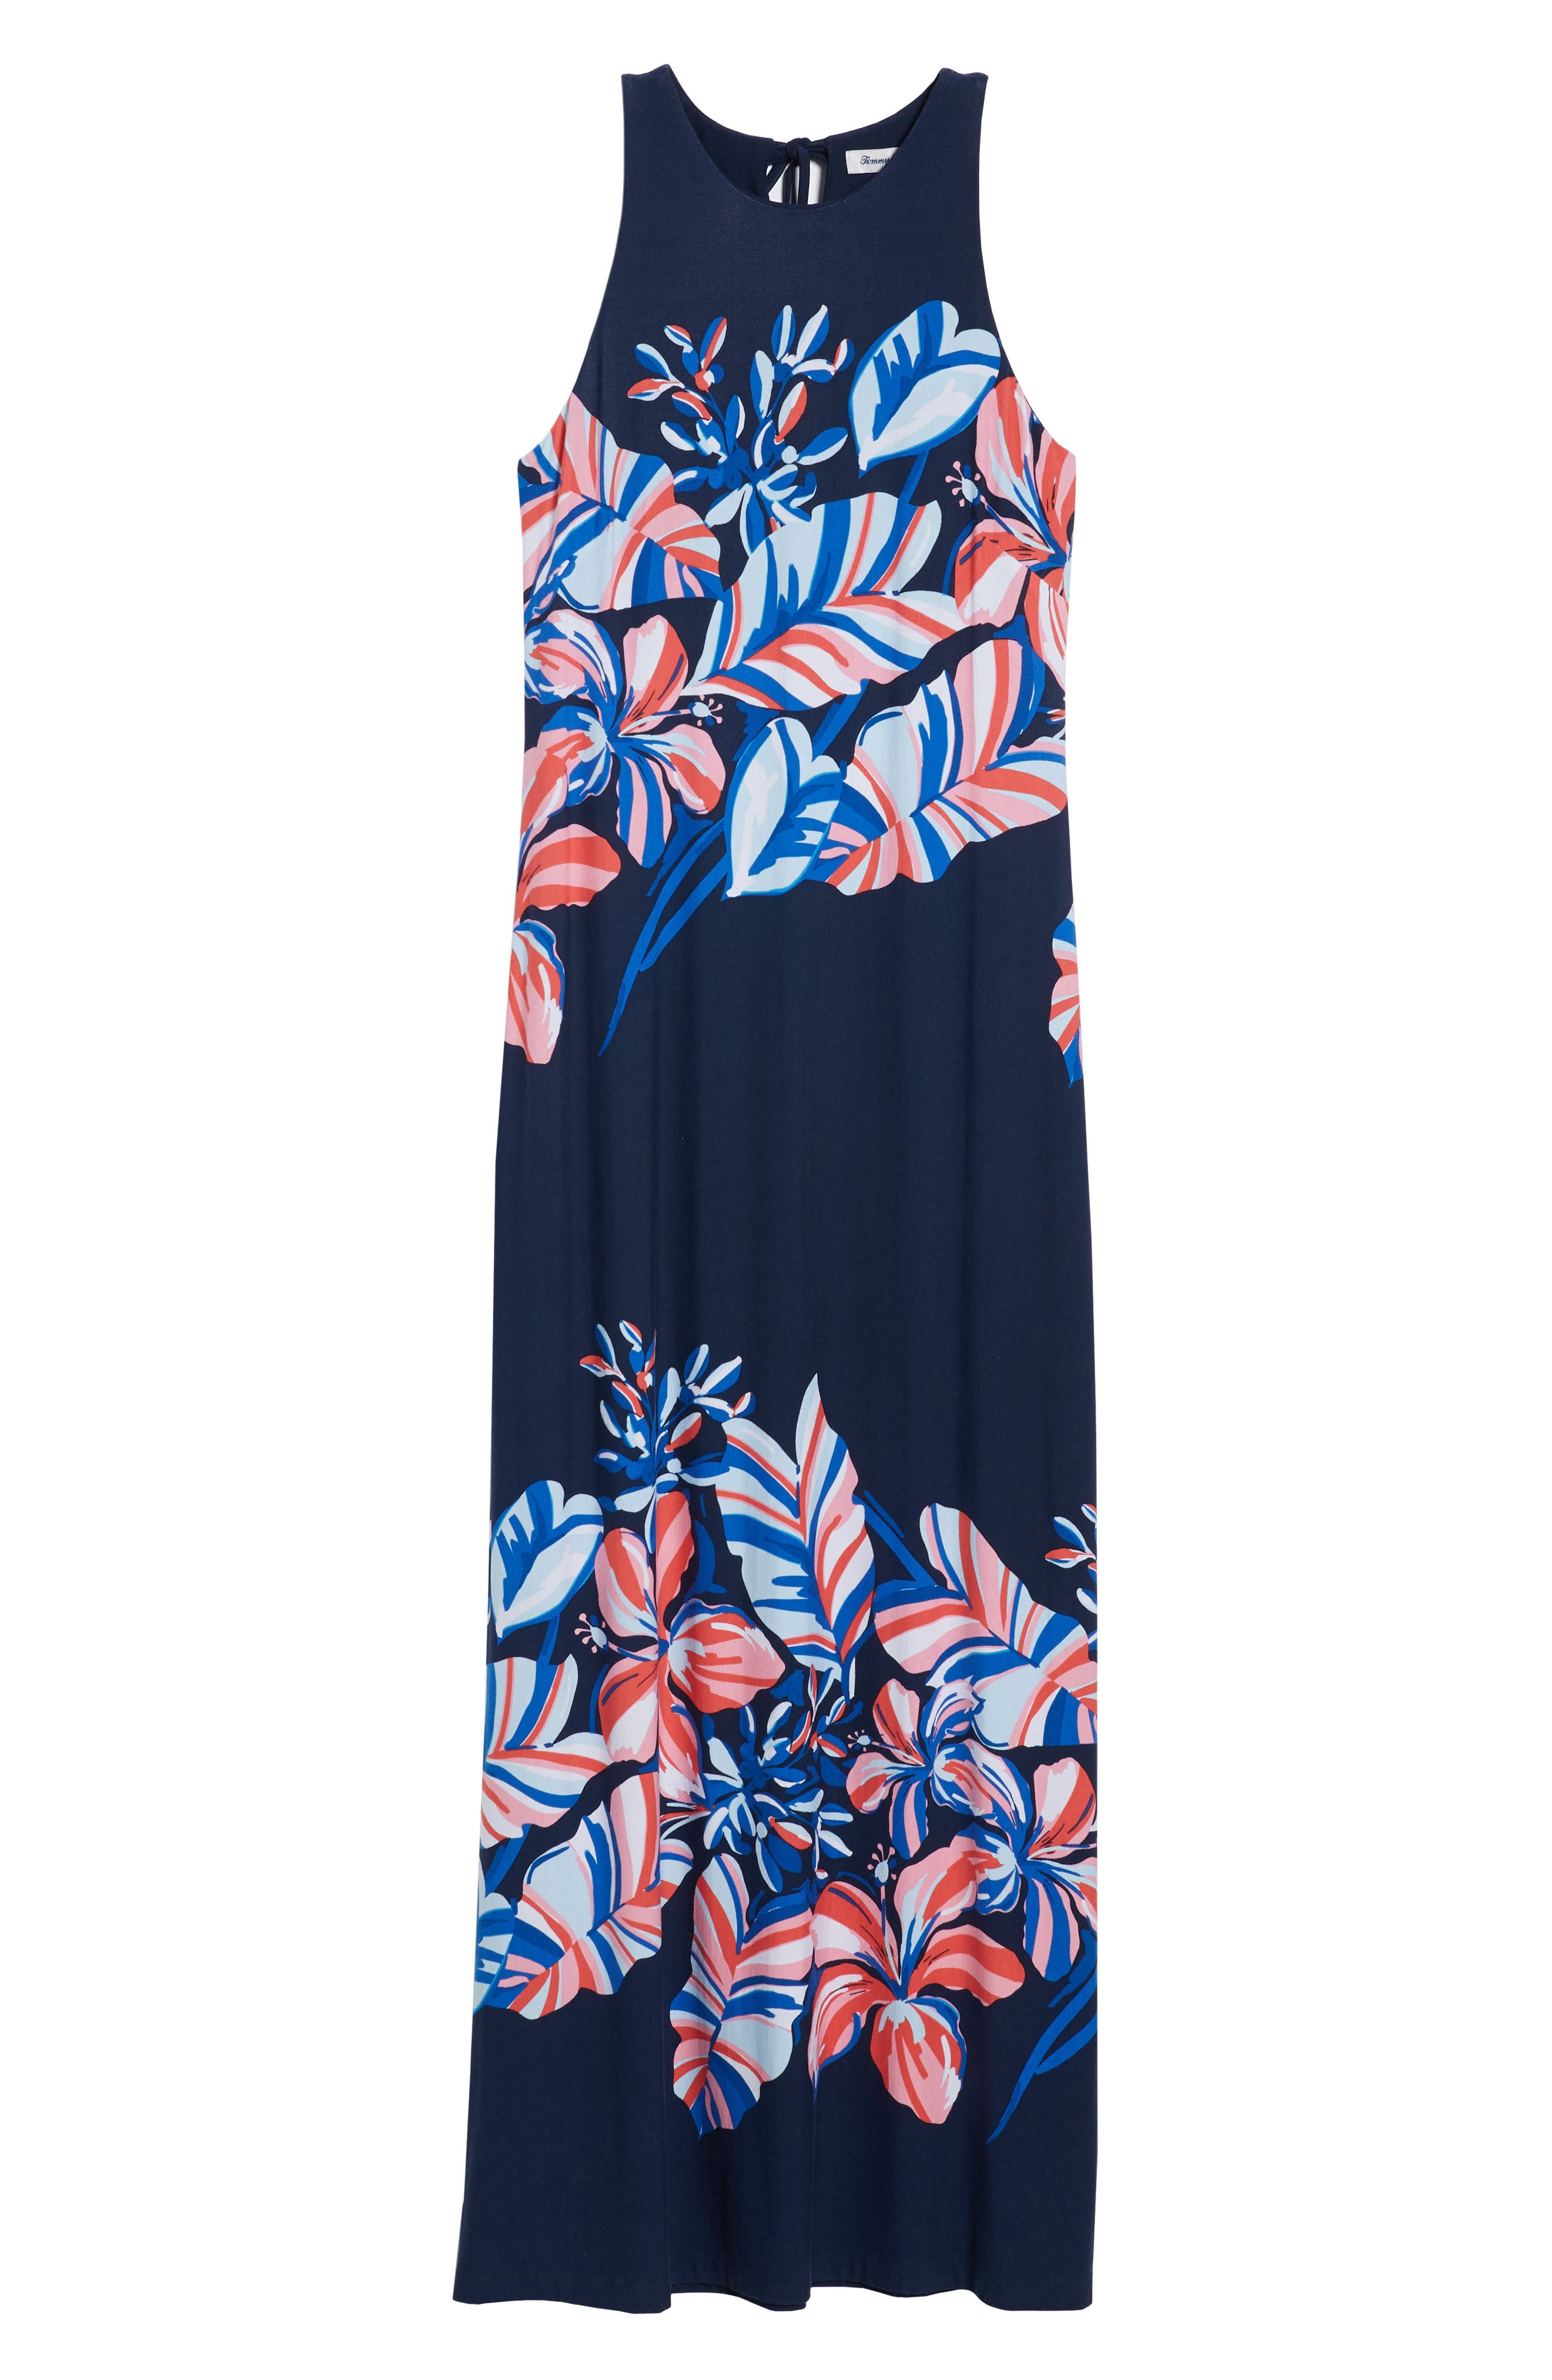 Le Tigre Floral Maxi Dress,                             Alternate thumbnail 7, color,                             OCEAN DEEP